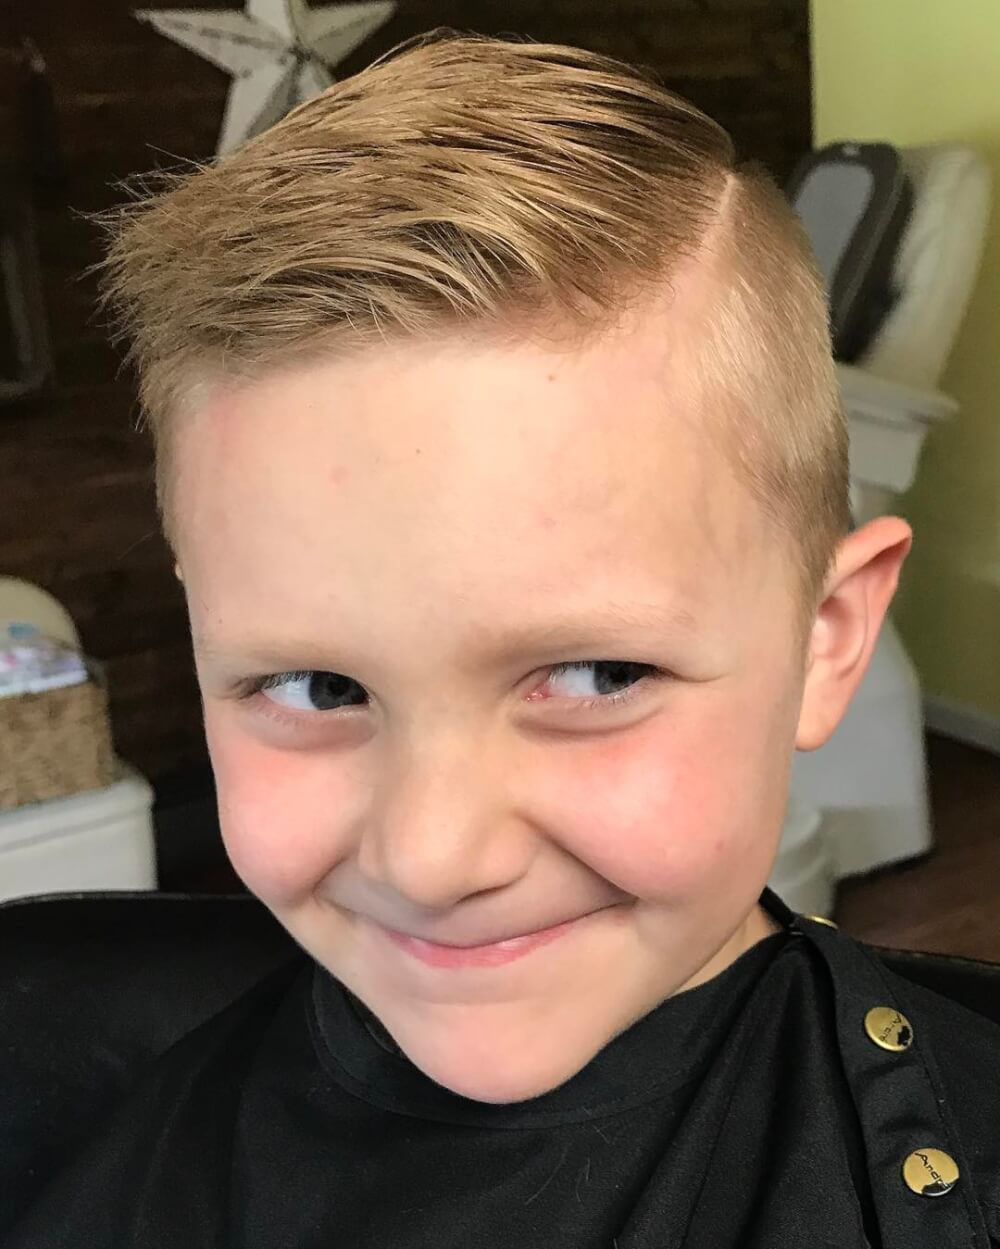 28 Coolest Boys Haircuts for School in 2020 | Boy hairstyles ...